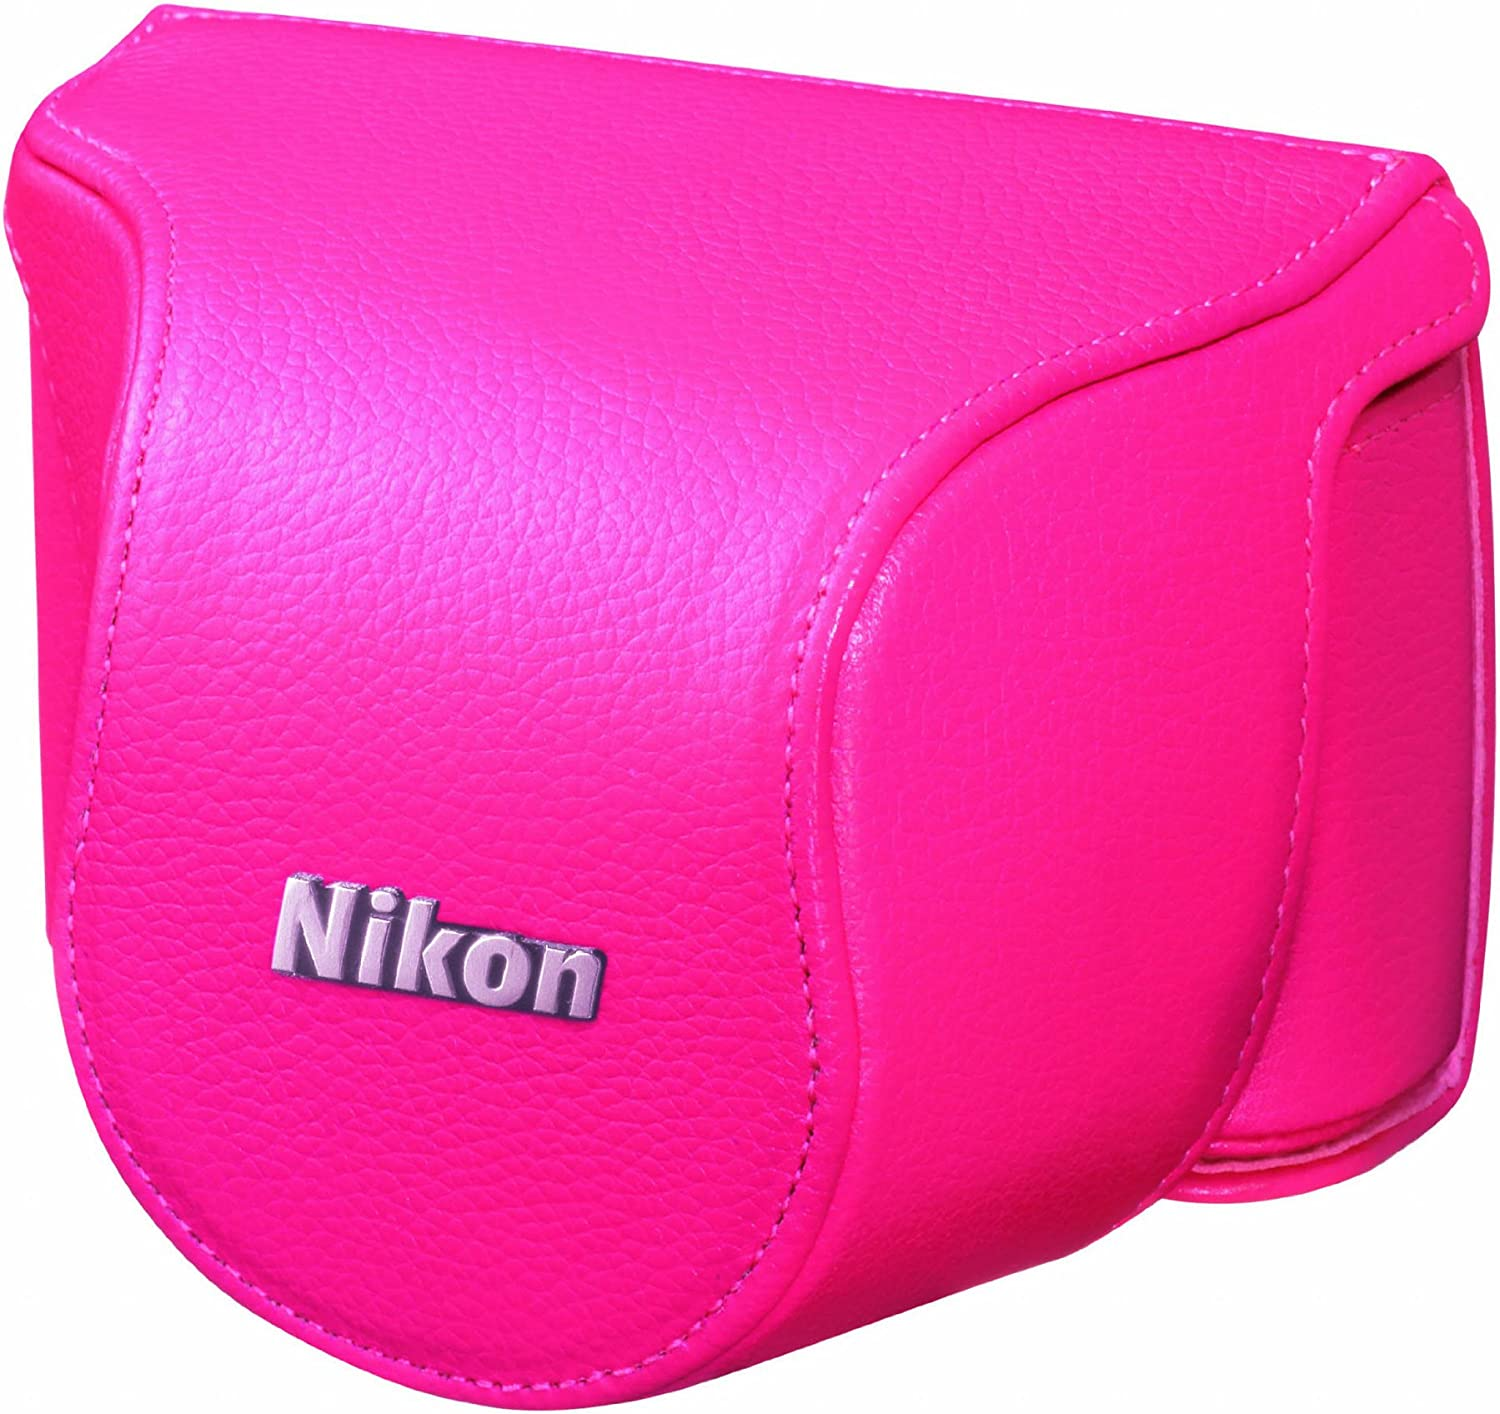 Nikon body case kit CB-N2000SF 1